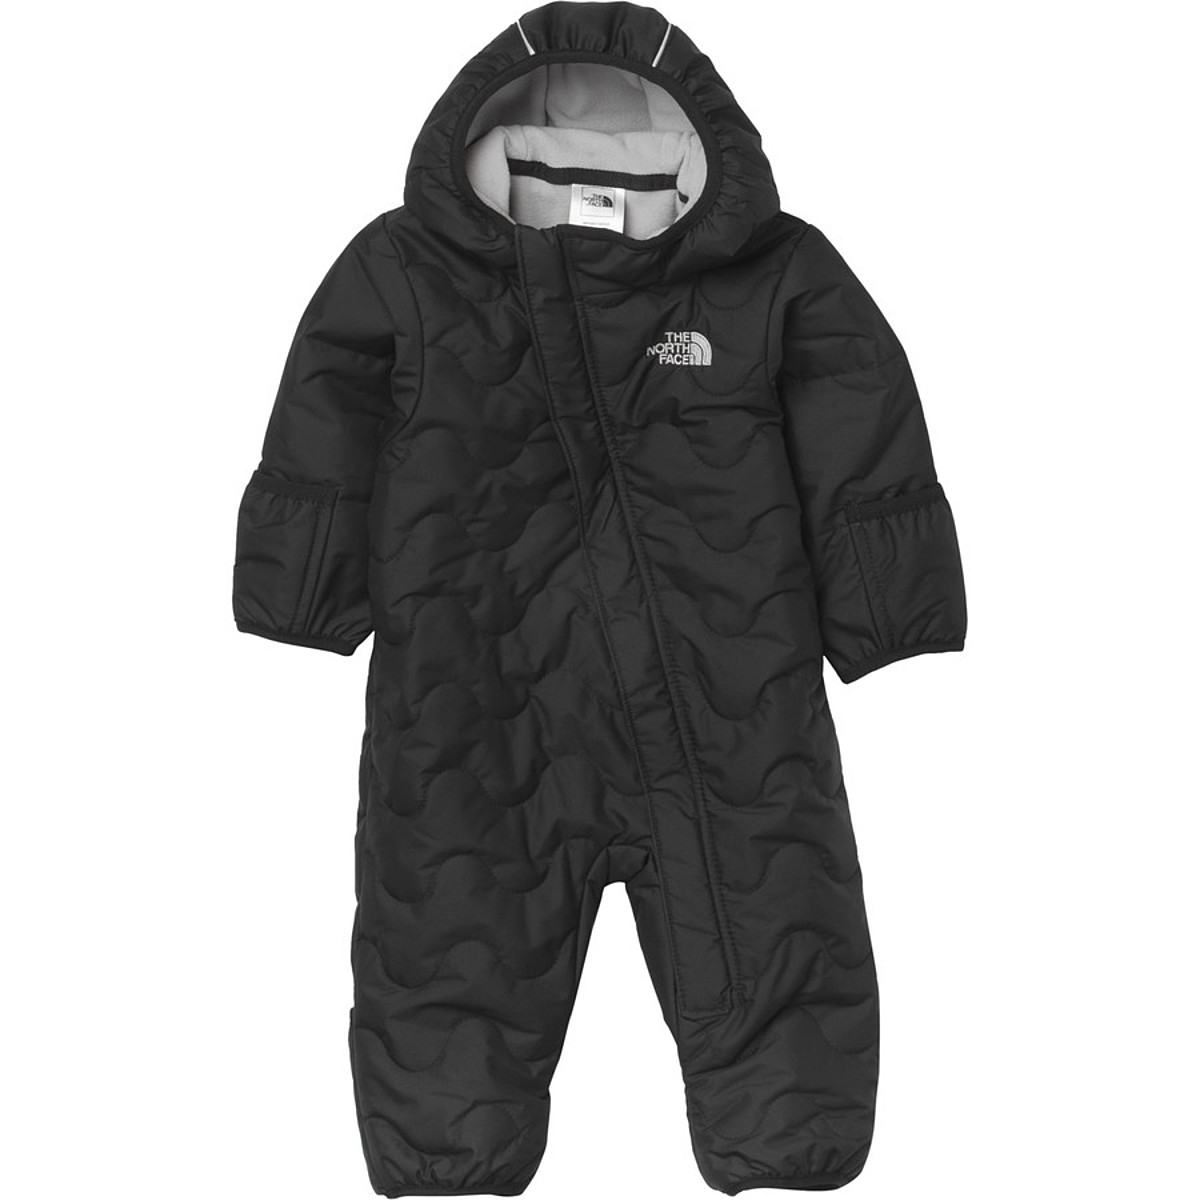 photo: The North Face Boys' Insulated Toasty Toes Bunting kids' snowsuit/bunting